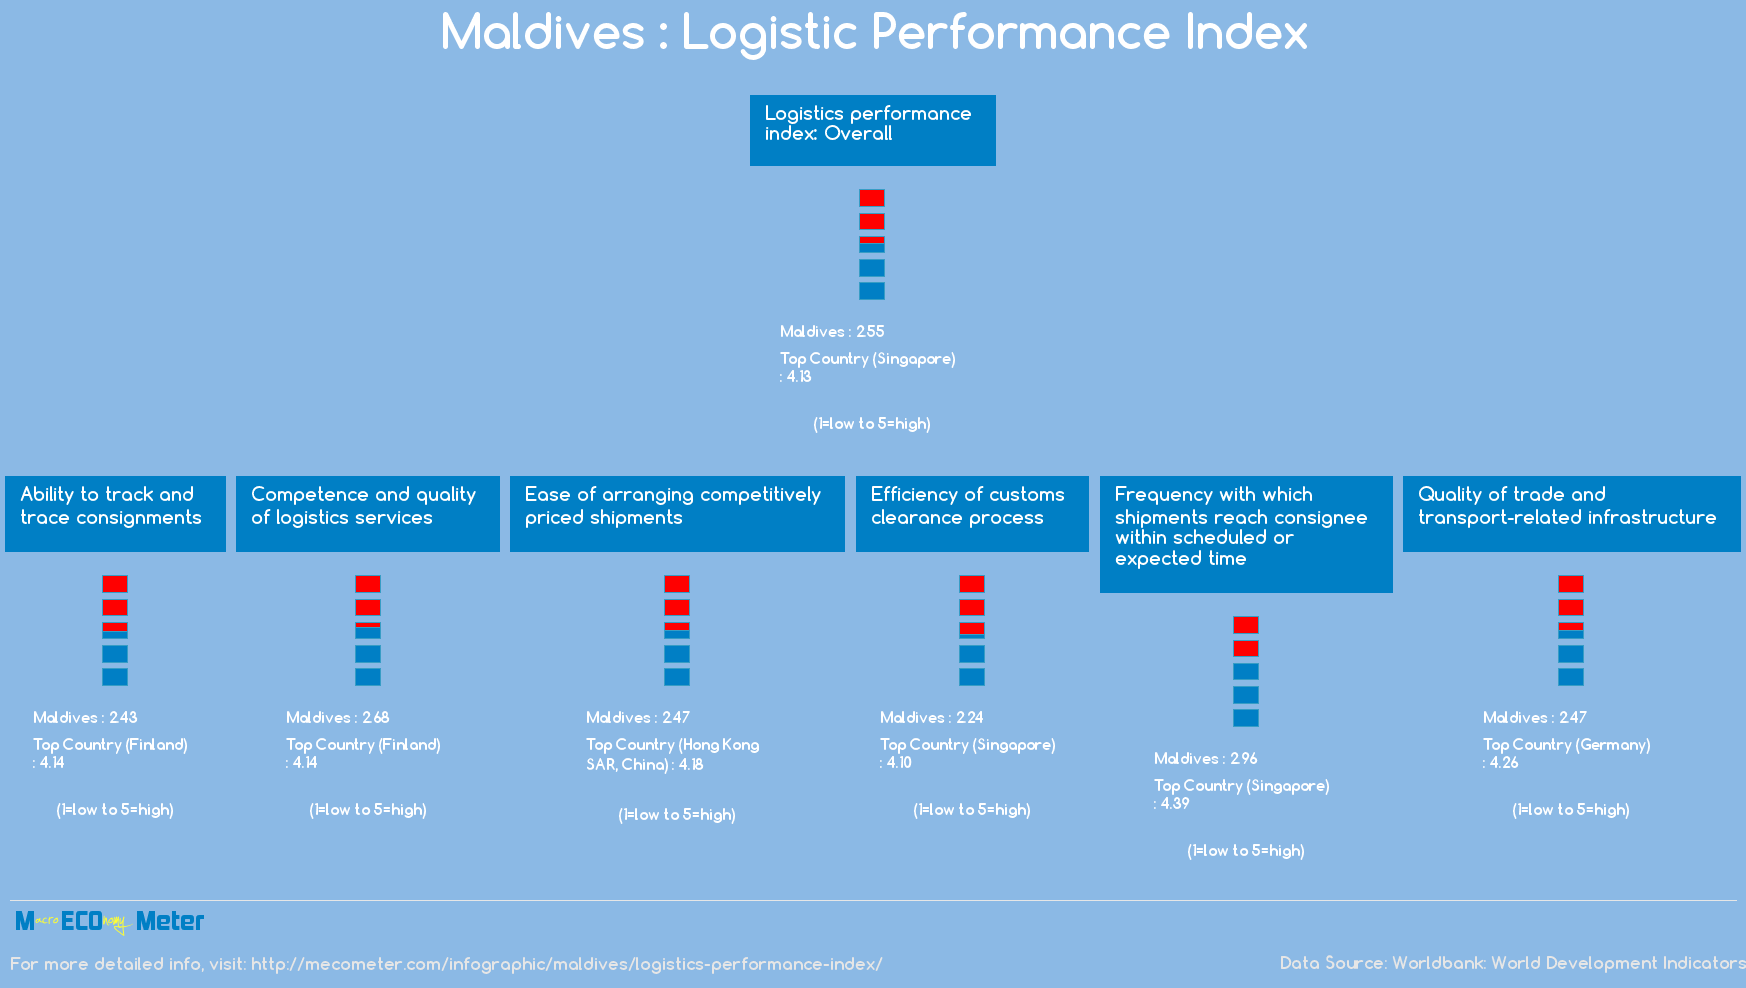 Maldives : Logistic Performance Index